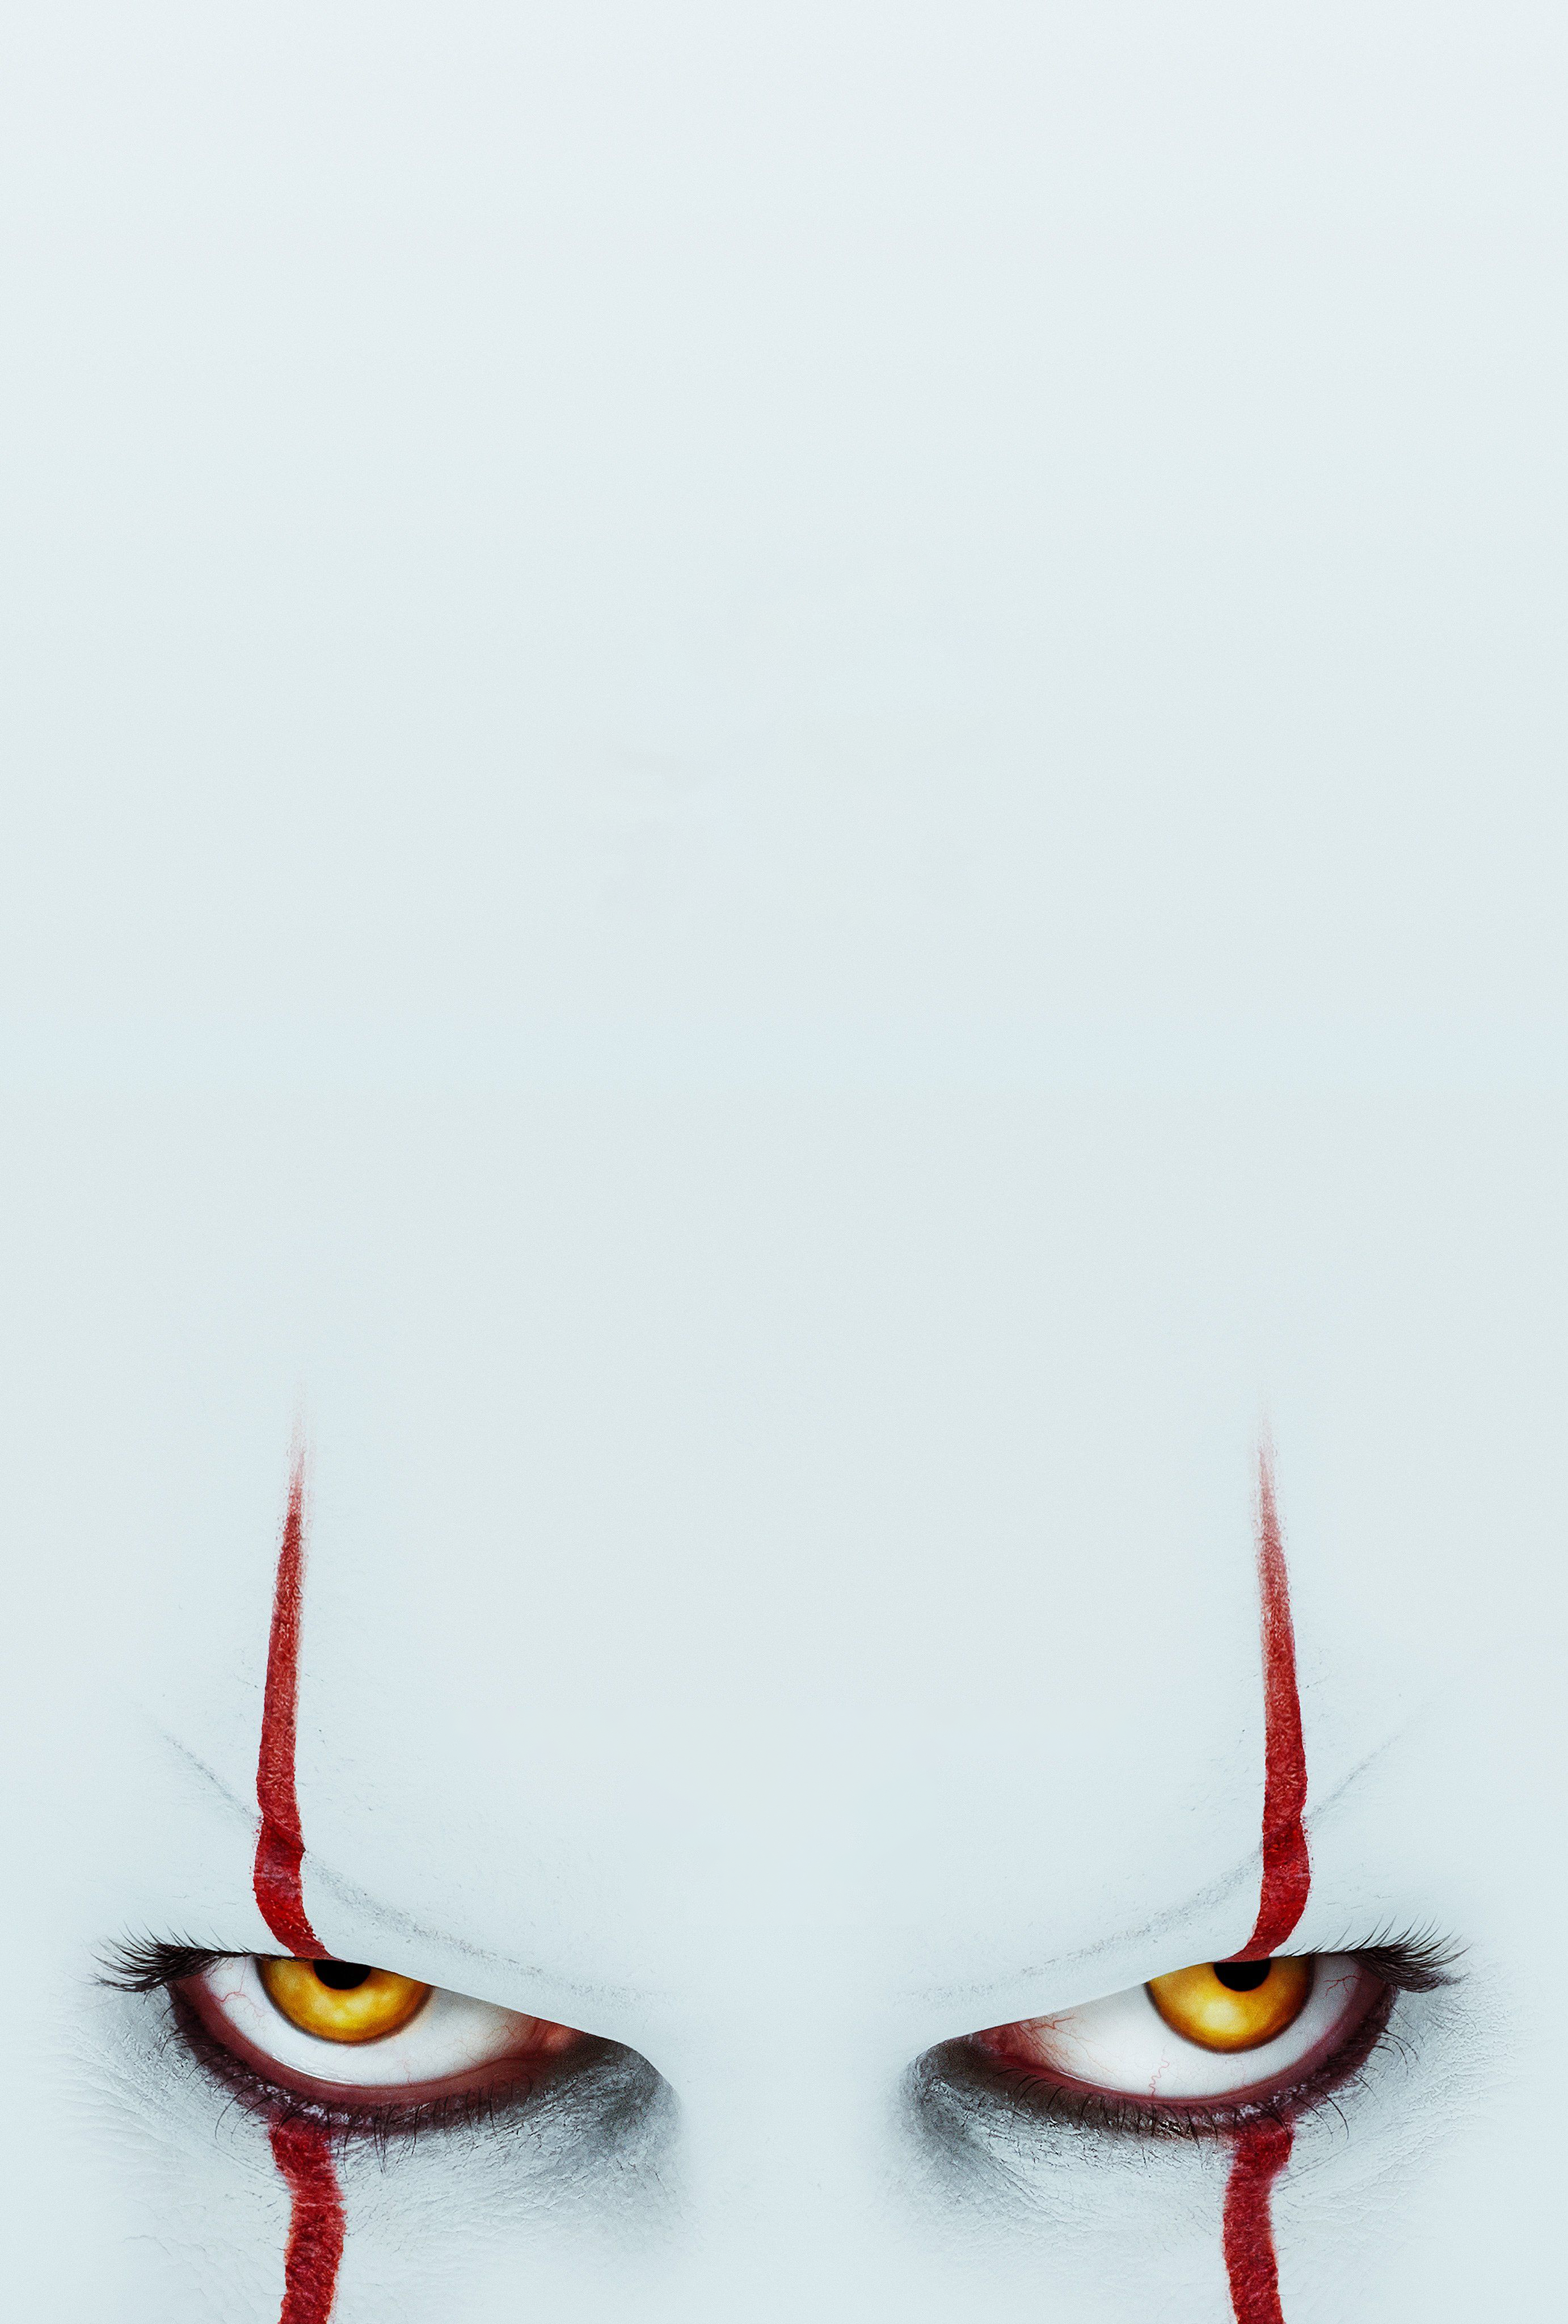 Here's a super high quality It Chapter Two poster with no